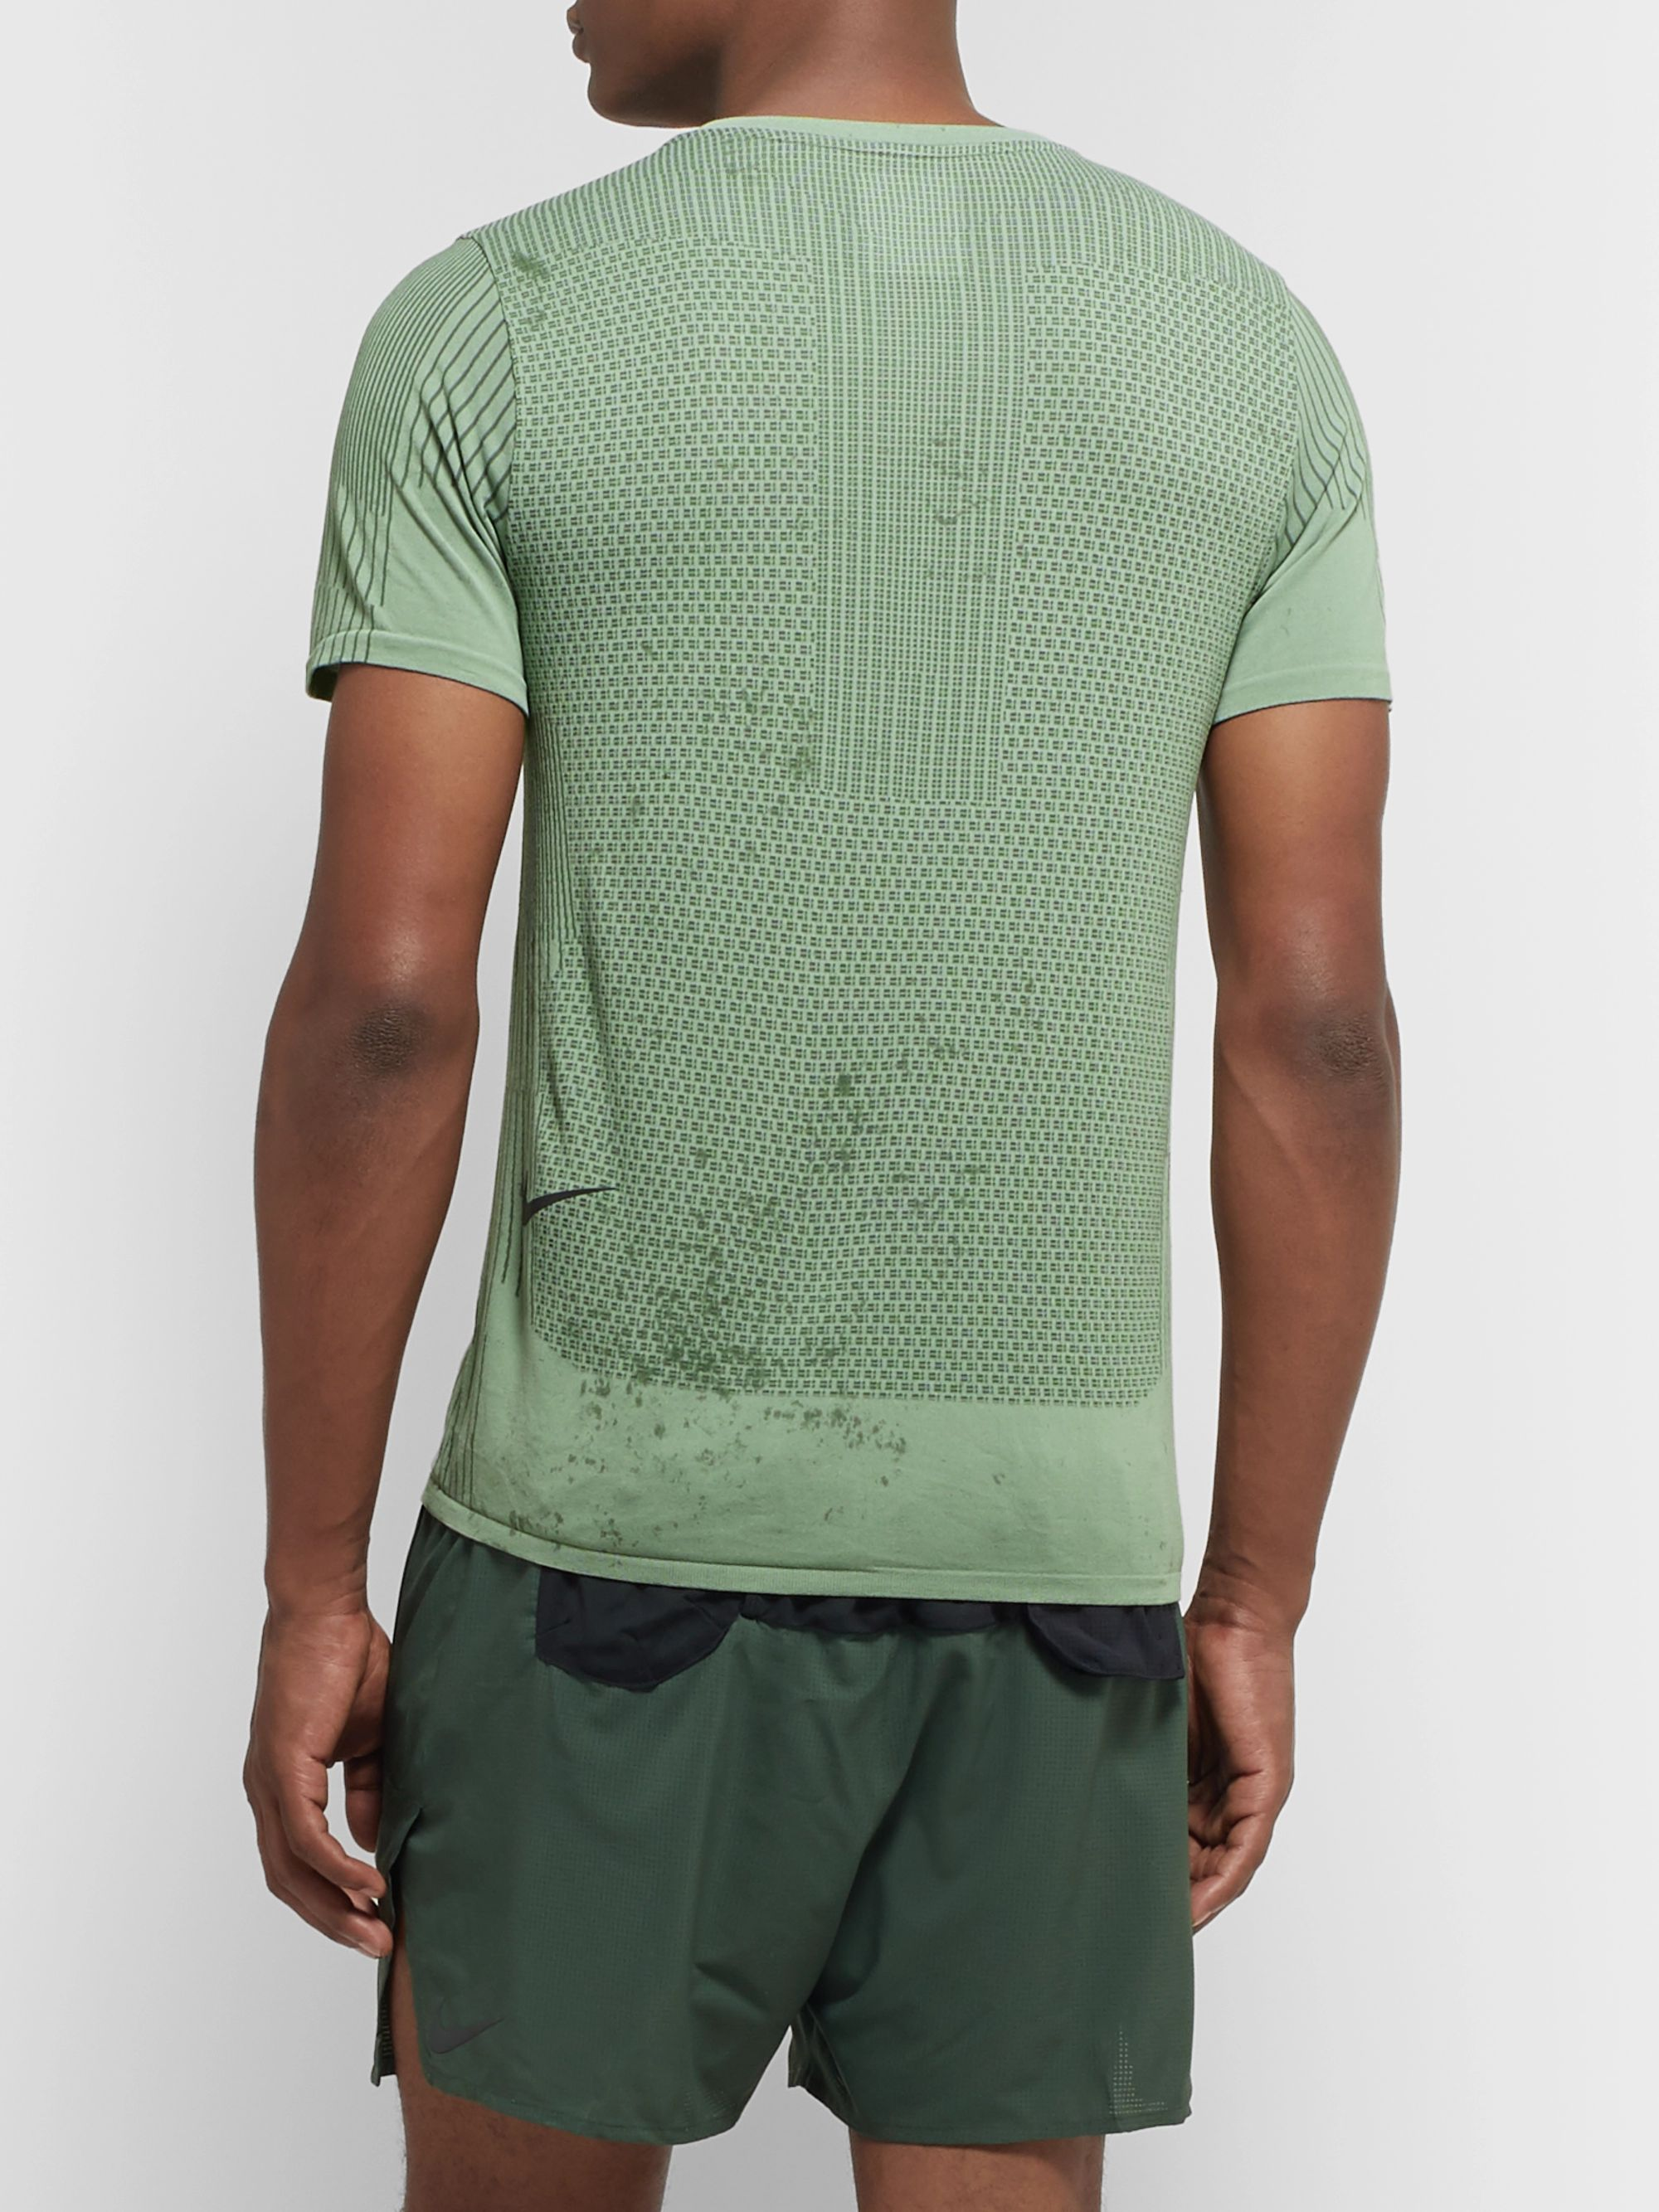 Nike Running Tech Pack Stretch-Mesh Running T-Shirt